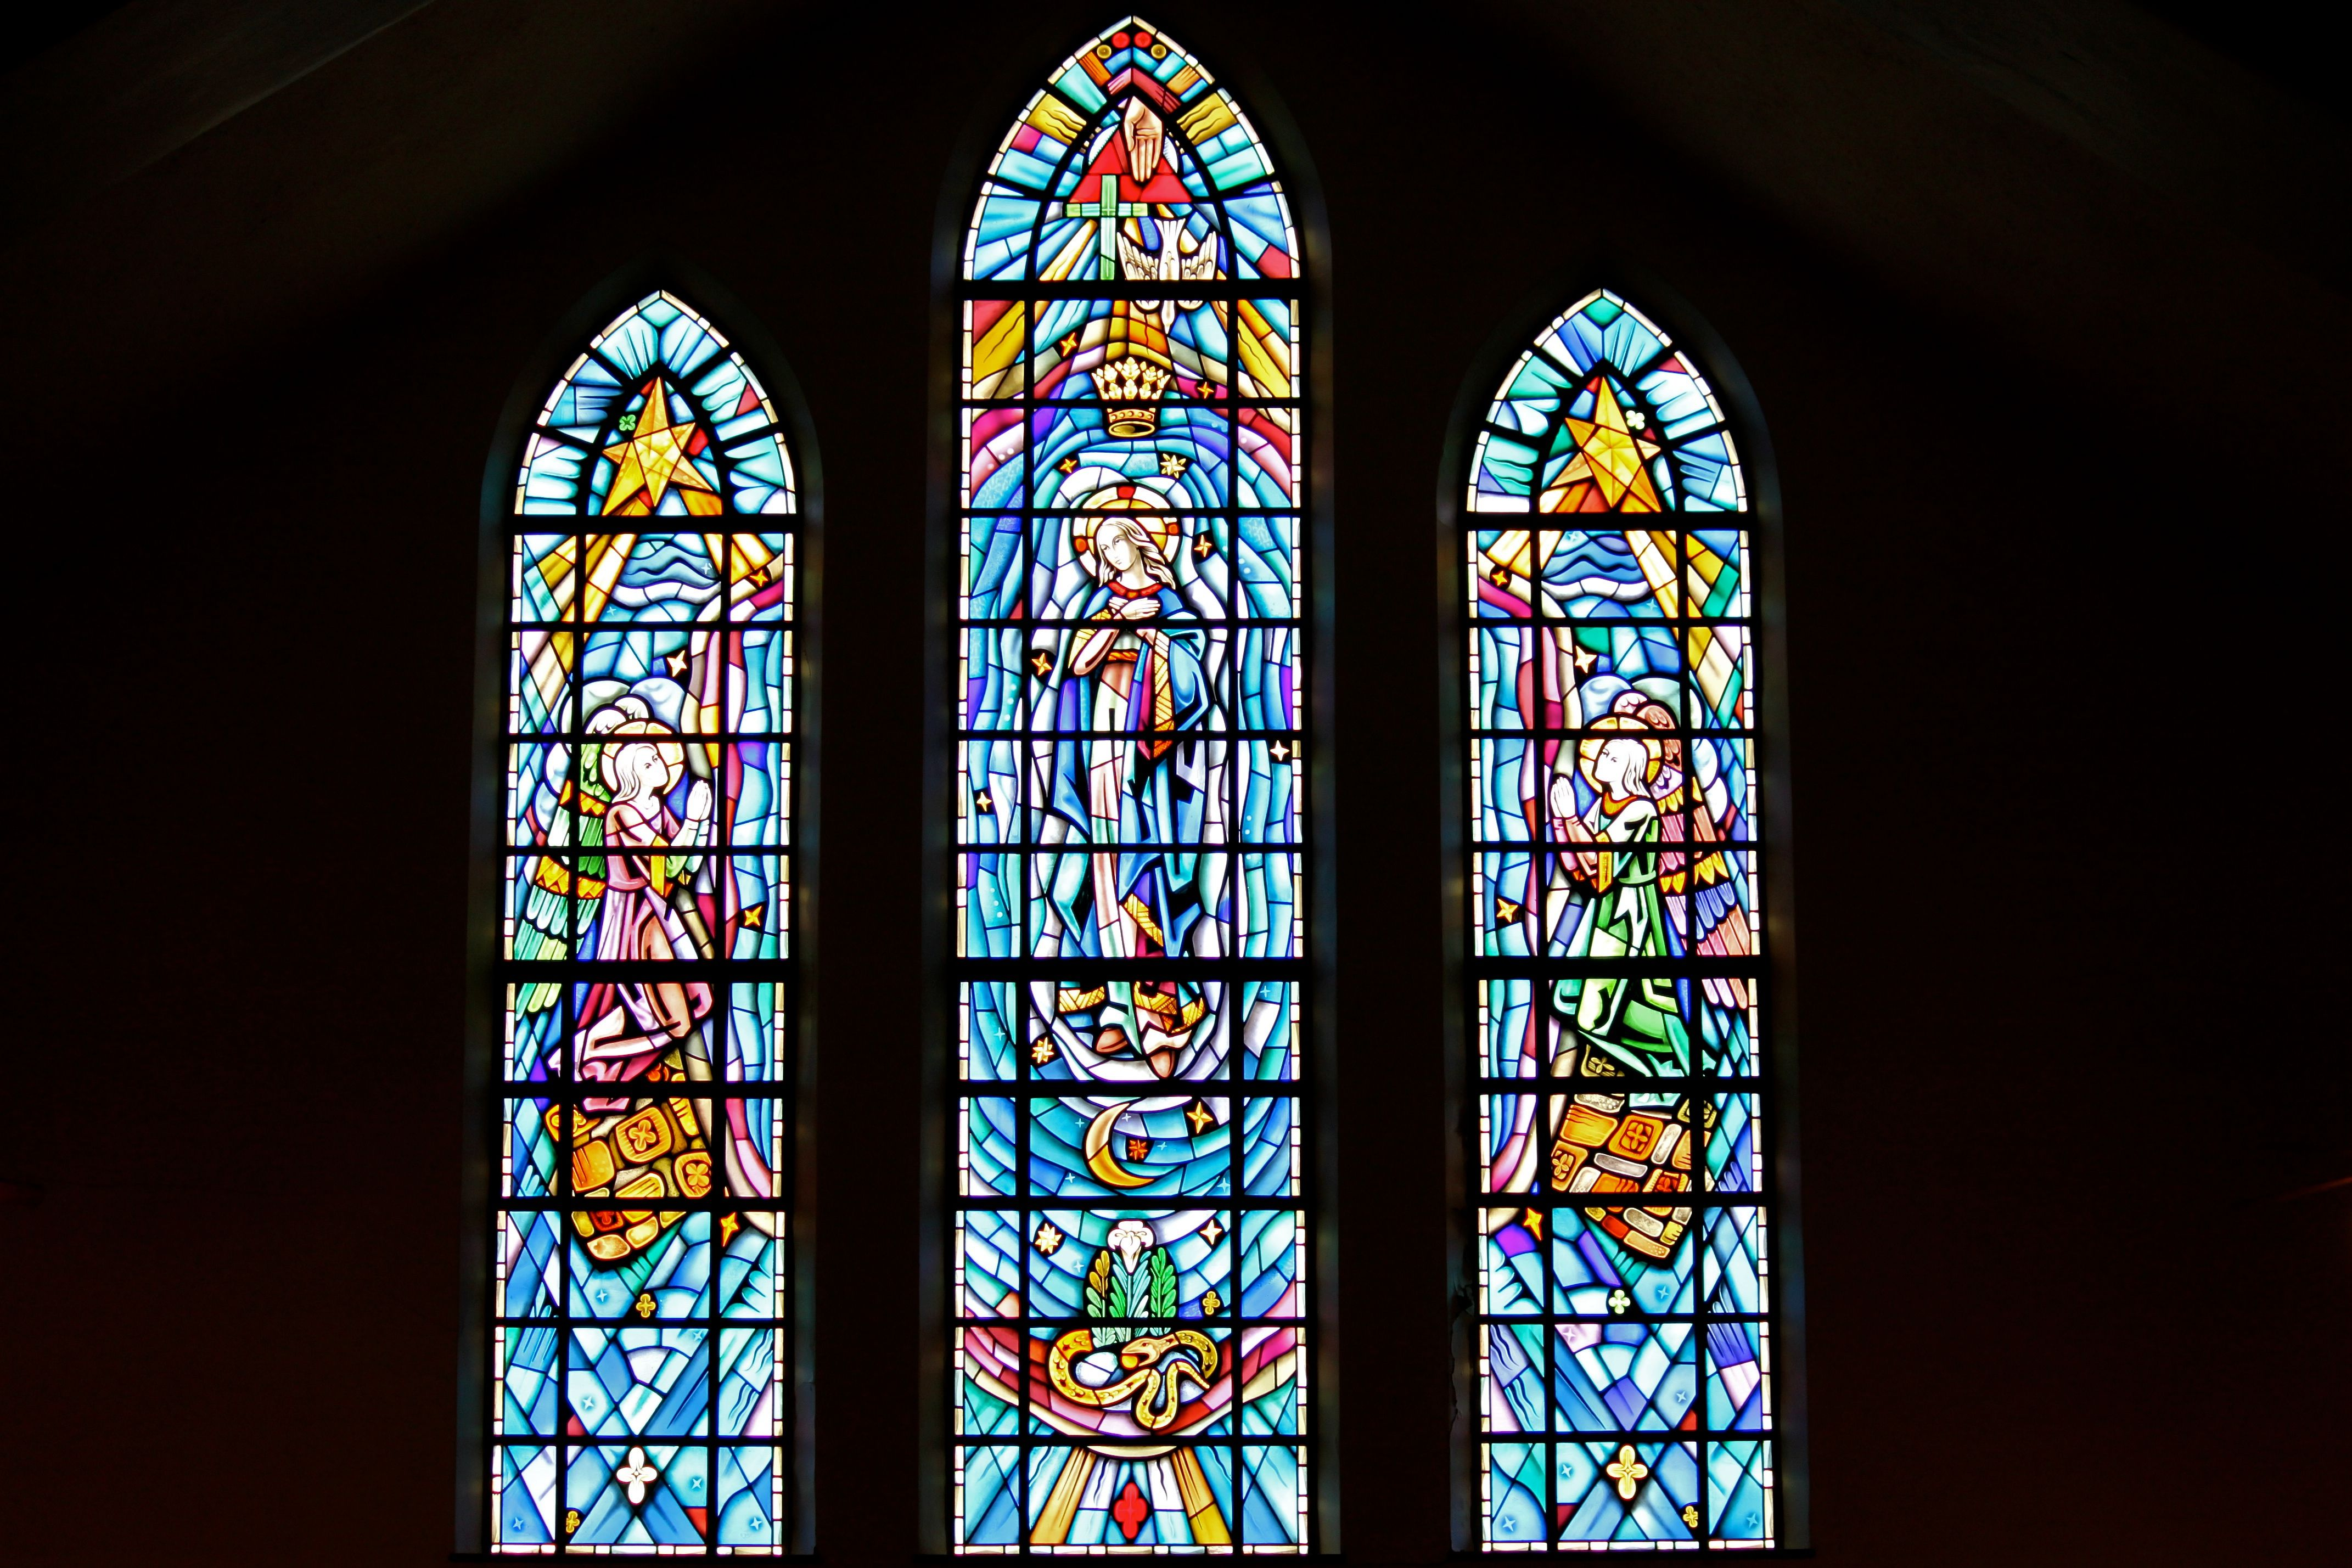 Stained-glass window of the Coronation in Saint Mary's Church, Painesville, OH. (© Scott P. Richert)